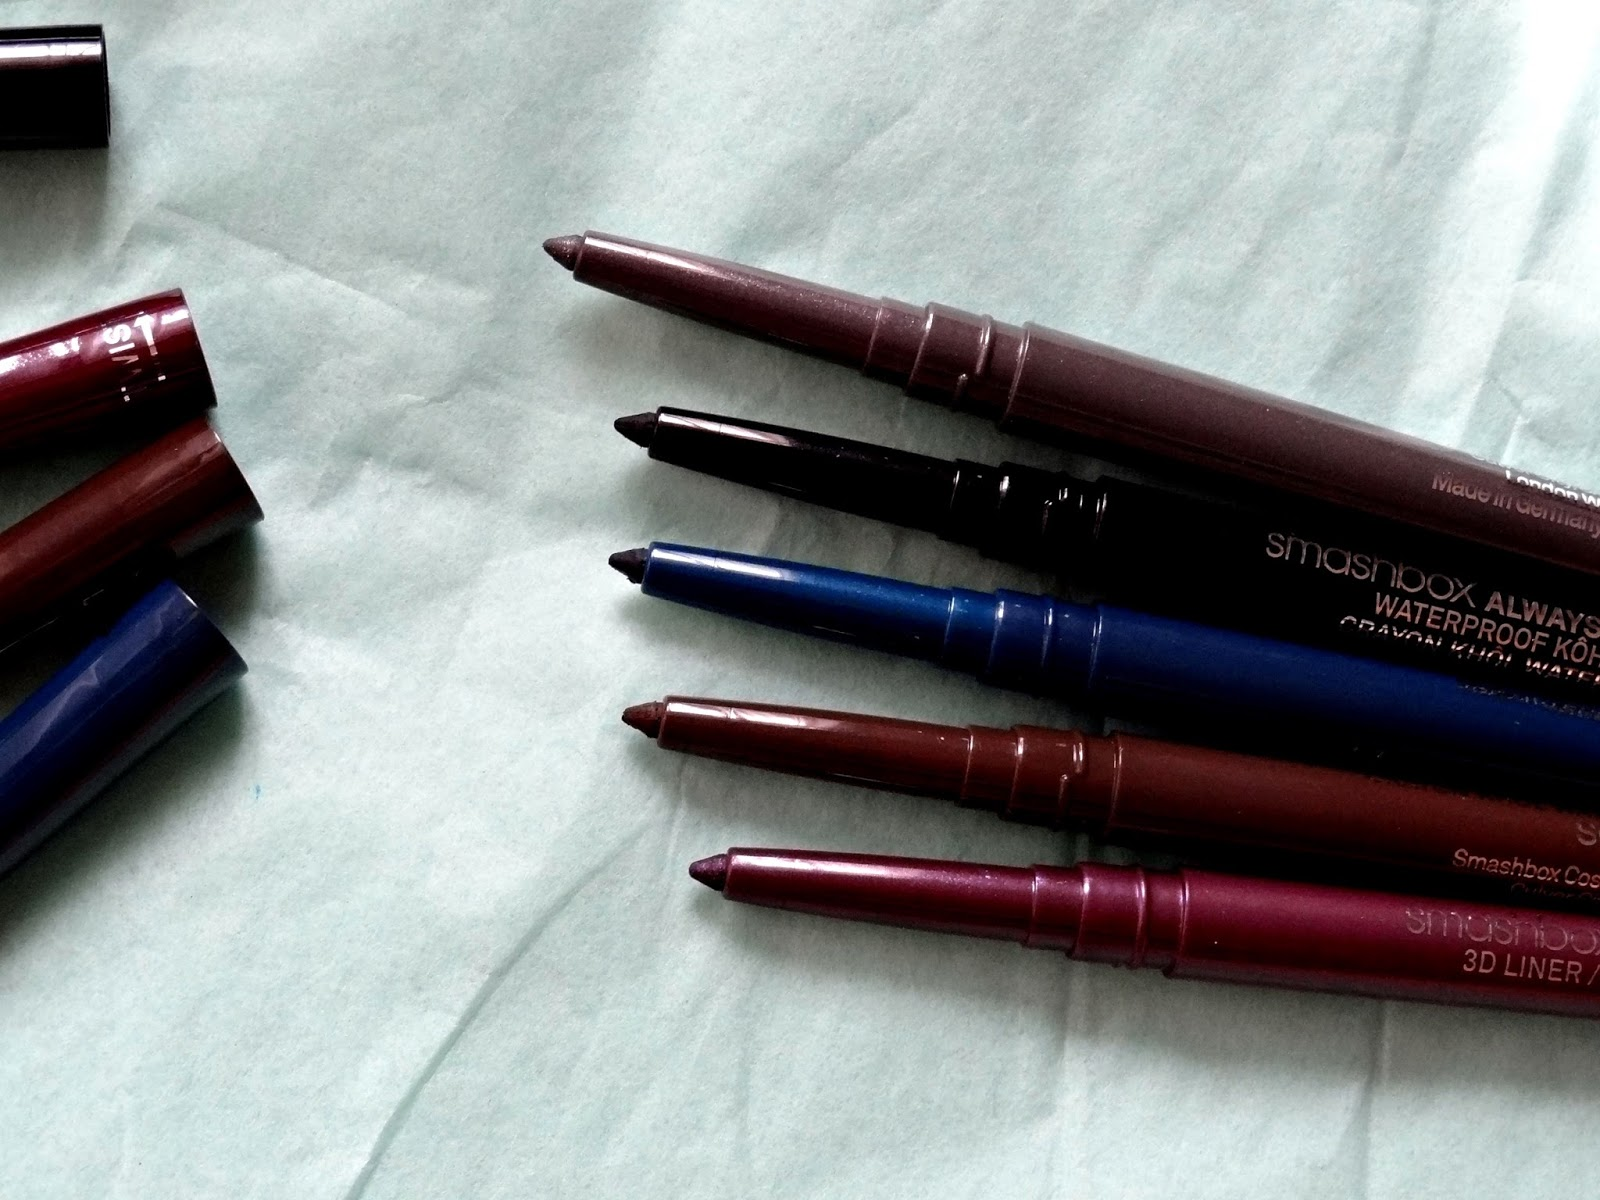 Smashbox On The Rocks Always Sharp Liner Set Smashbox Holiday 2014